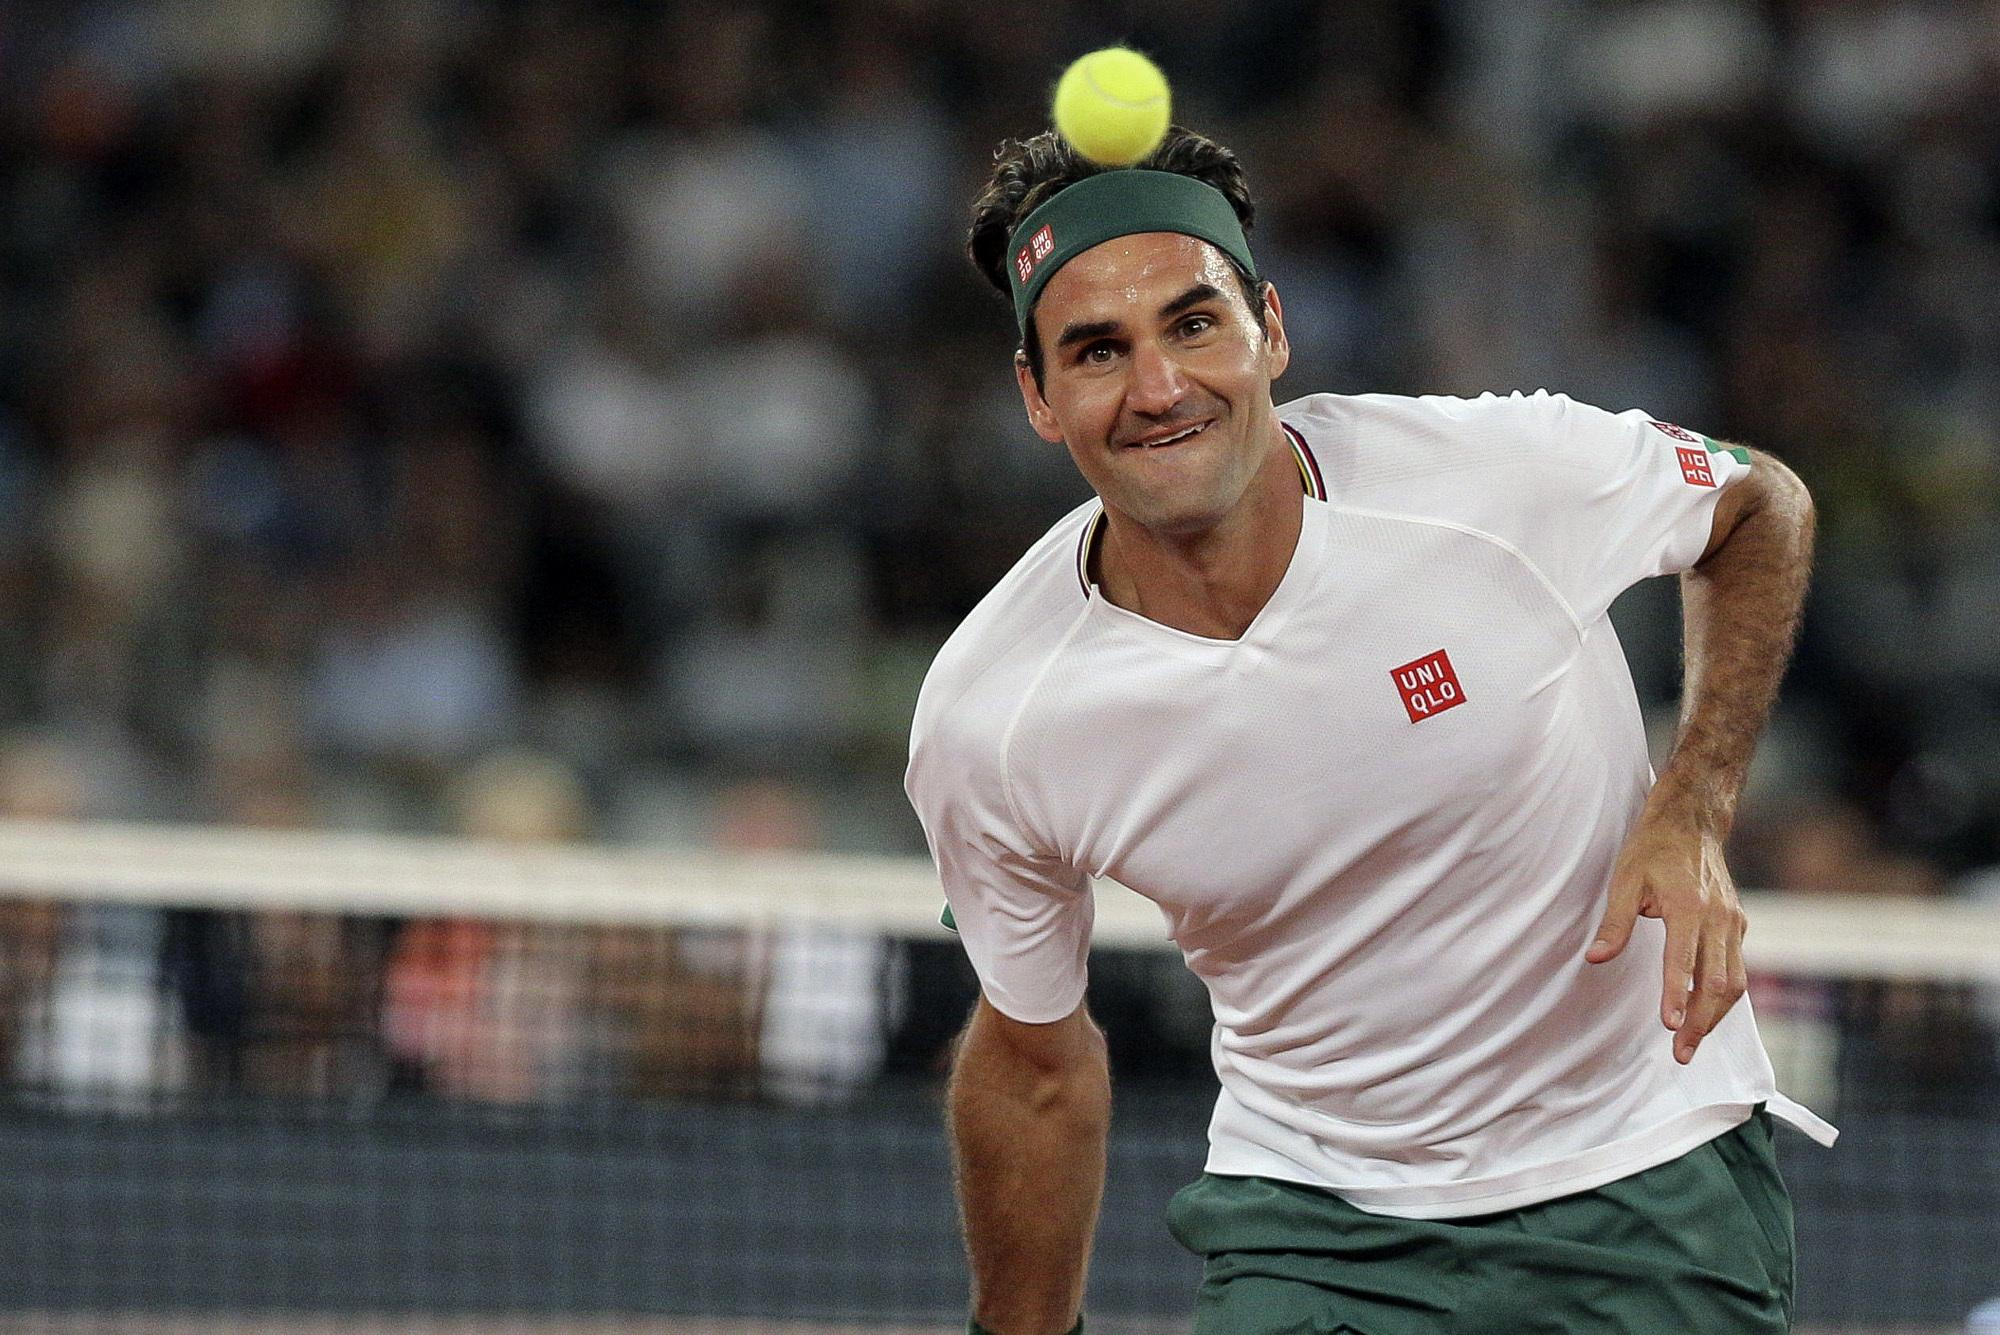 Roger Federer To Miss French Open Other Events After Knee Surgery